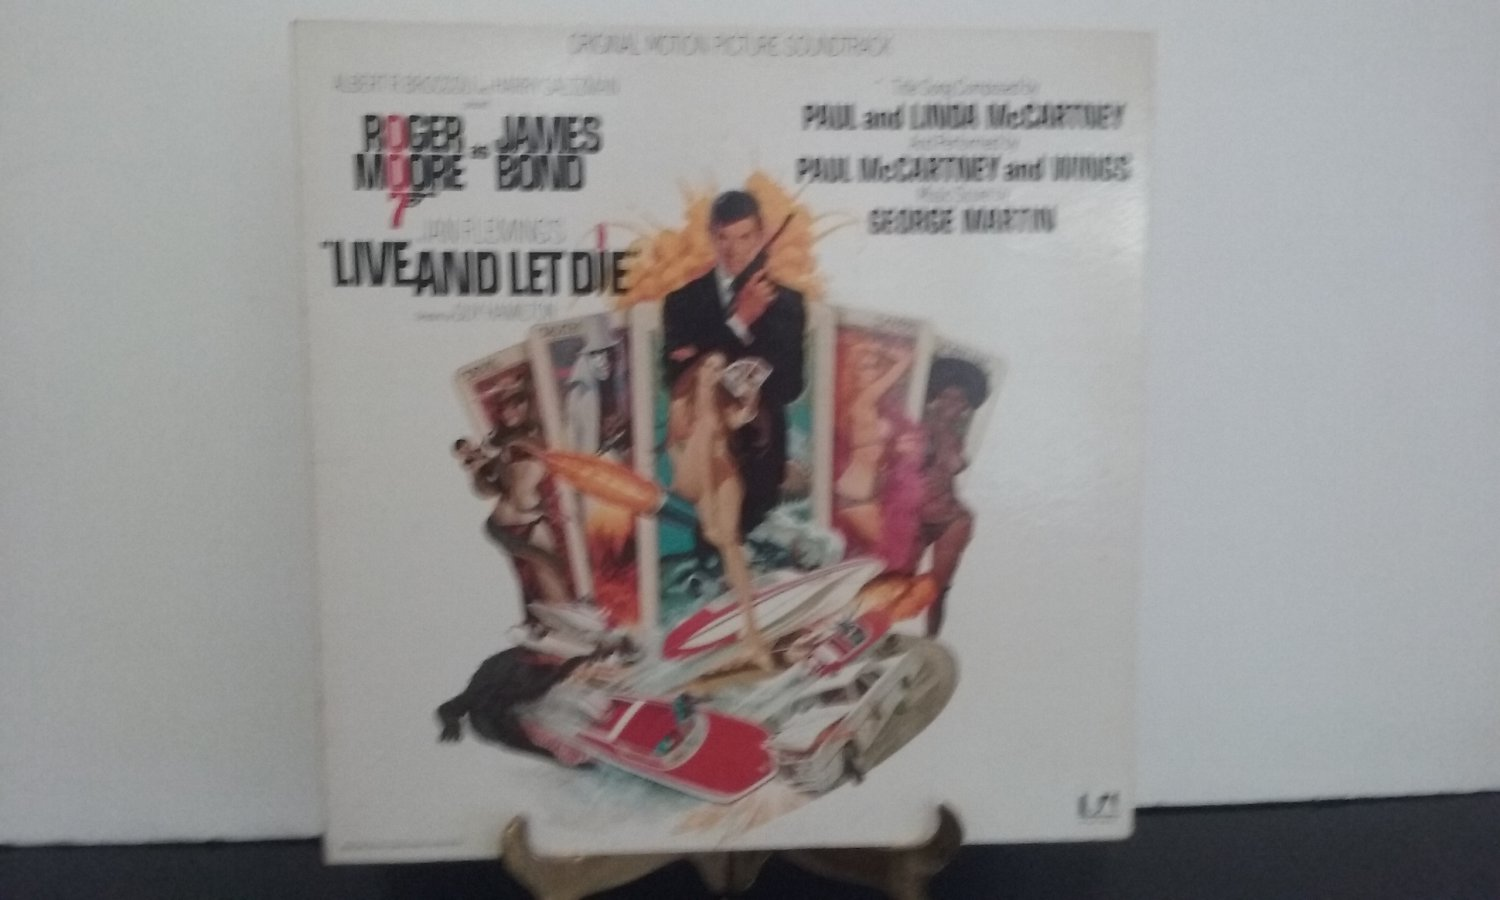 Paul McCartney & Wings - Live And Let Die - Motion Picture Sound Track - Circa 1973